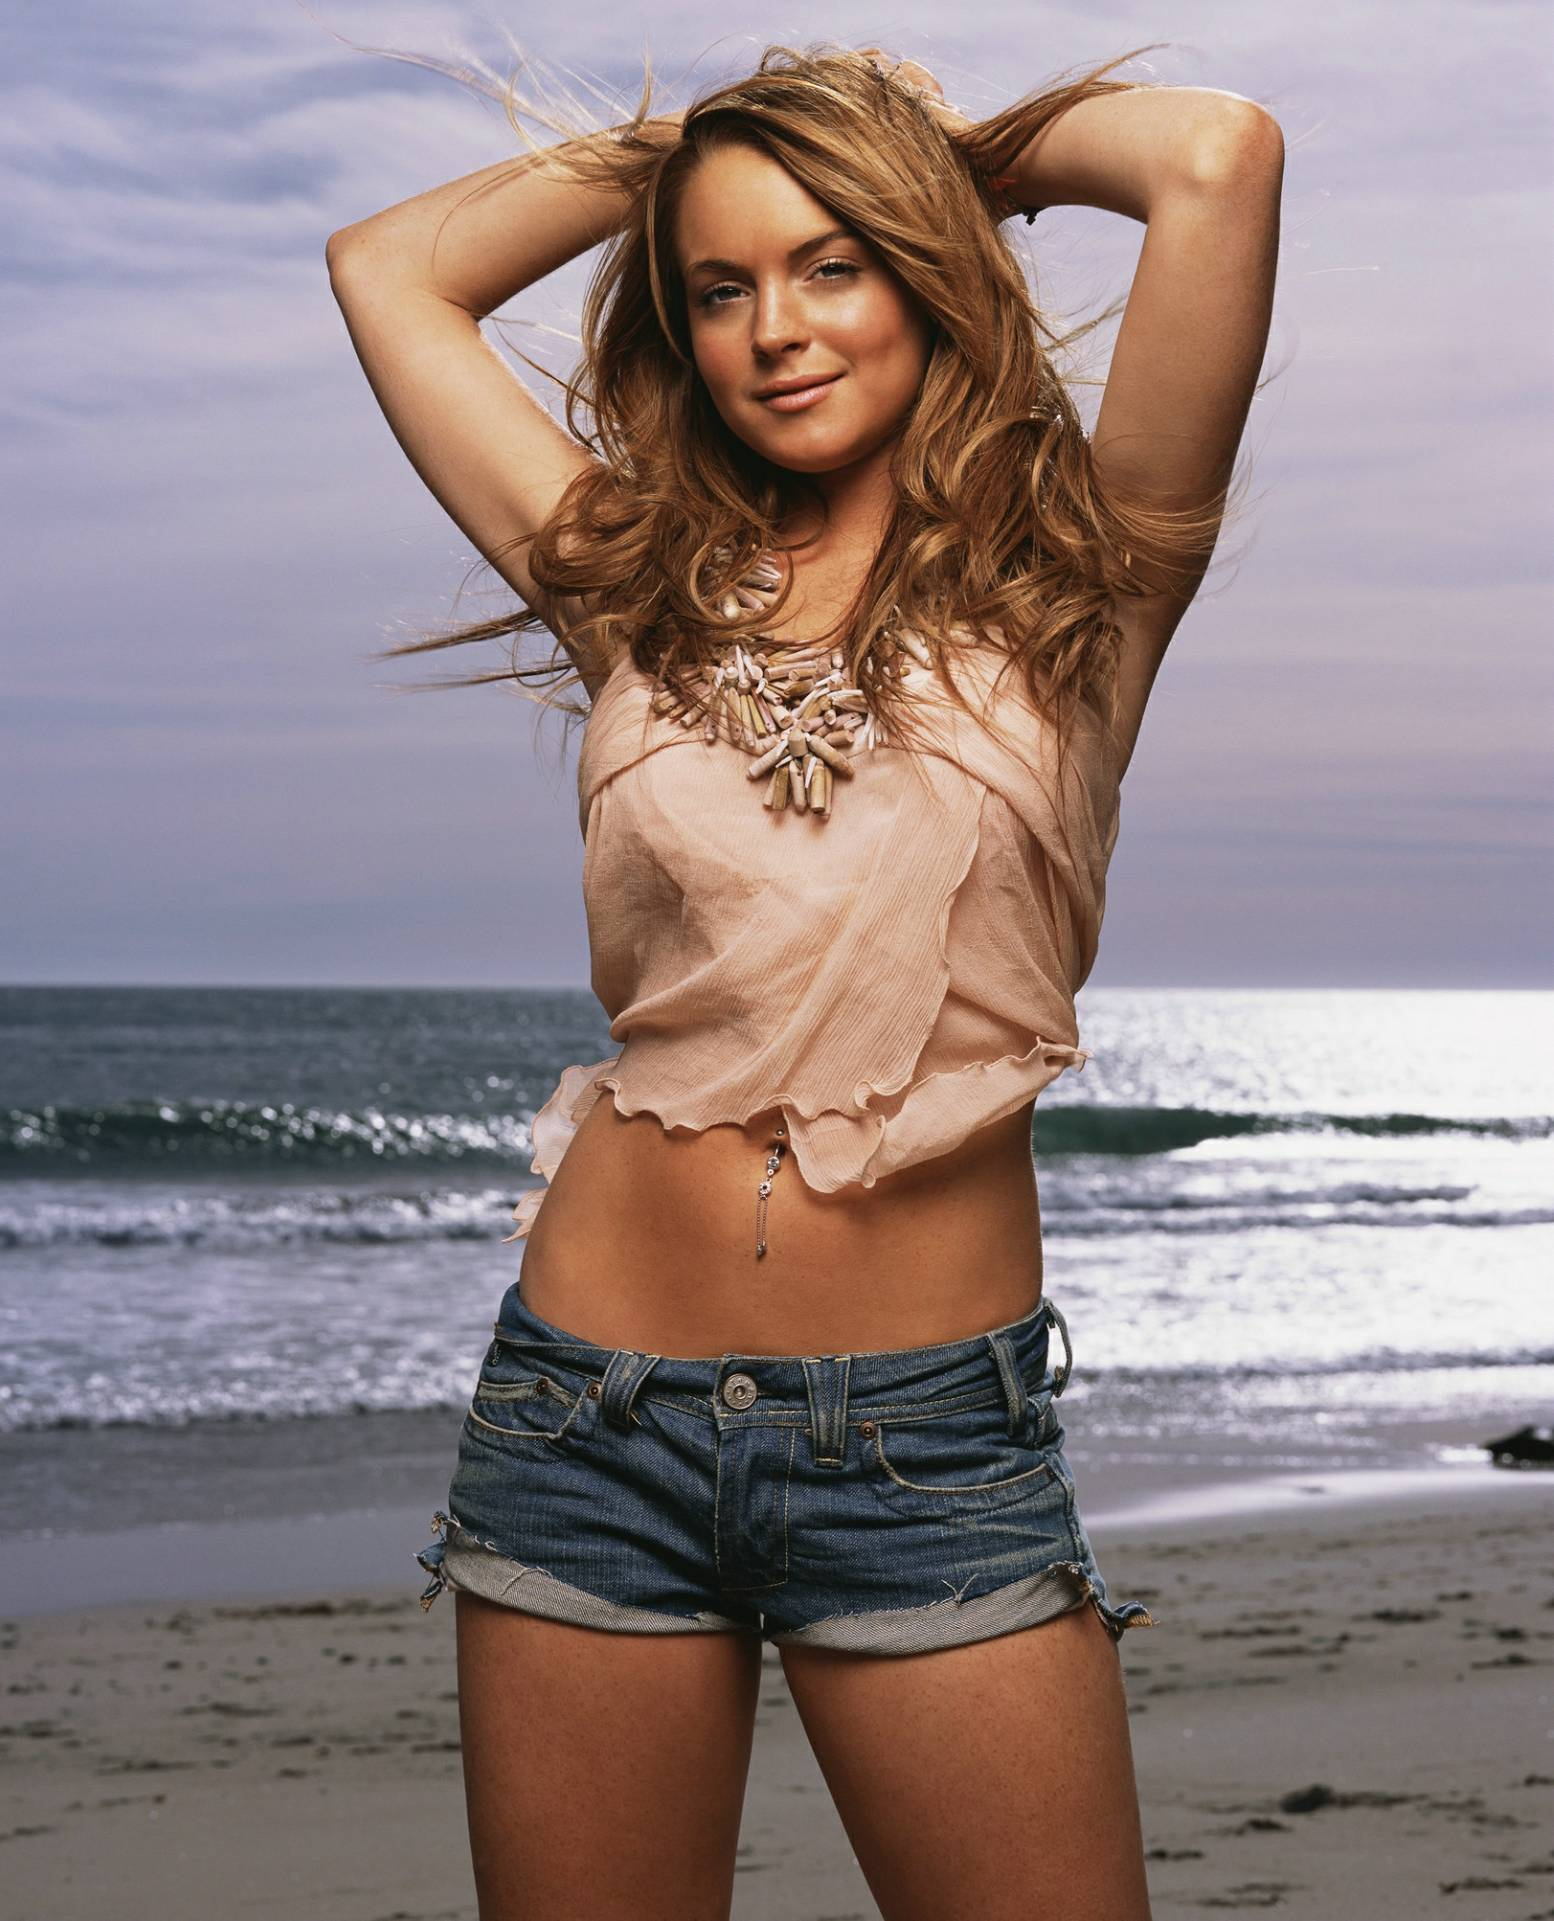 girls actors lindsay lohan - 736×1156